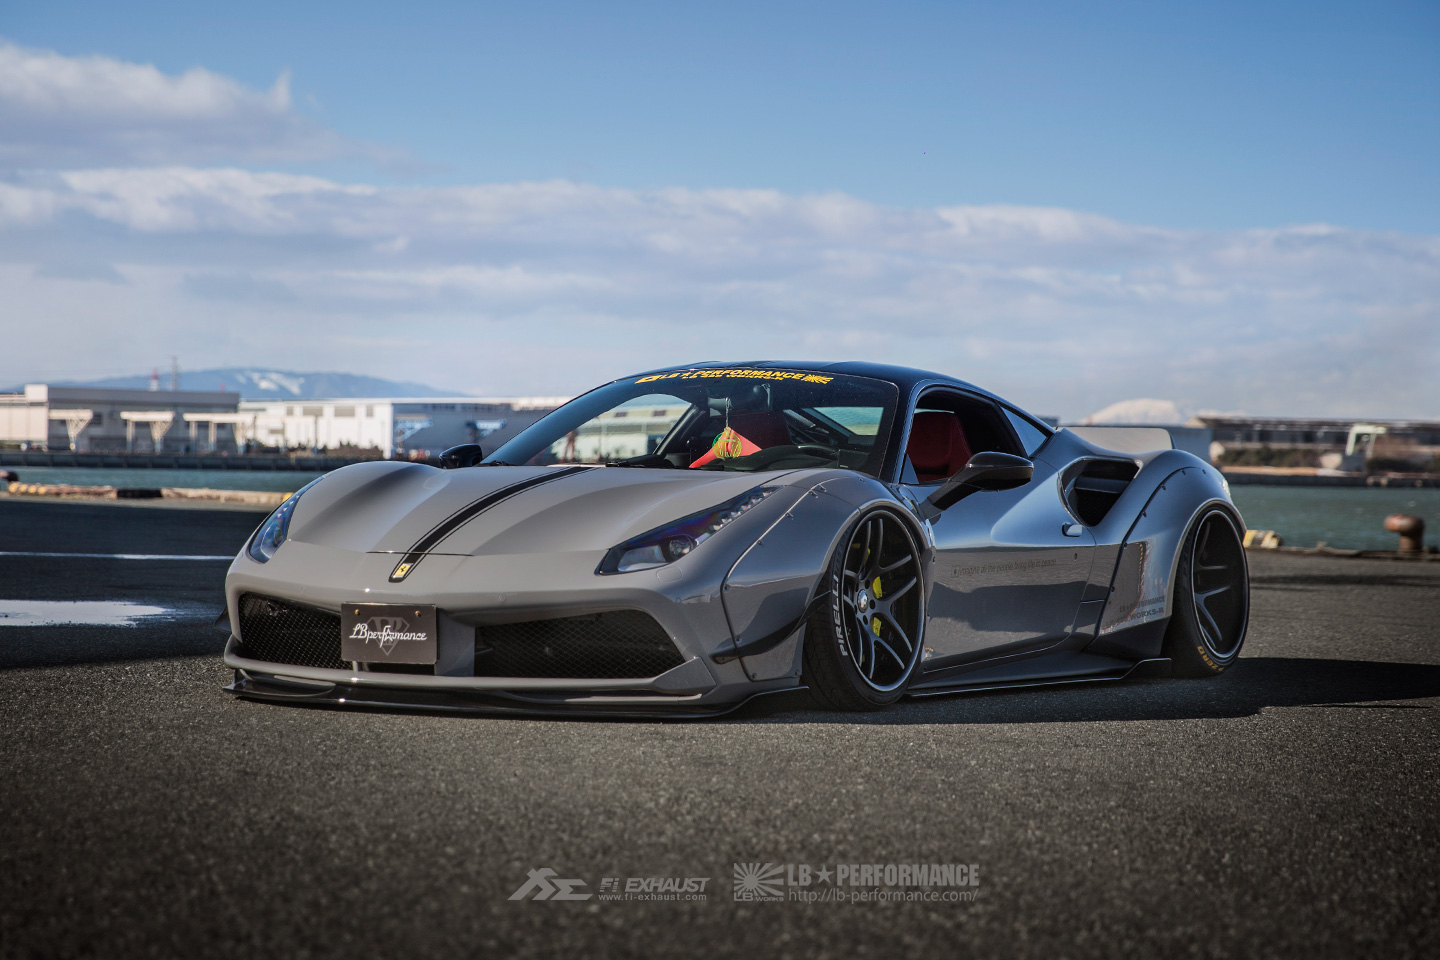 0_1493076183482_ferrari-488-LB-WORKS_Gray_fi-exhaust_3.jpg